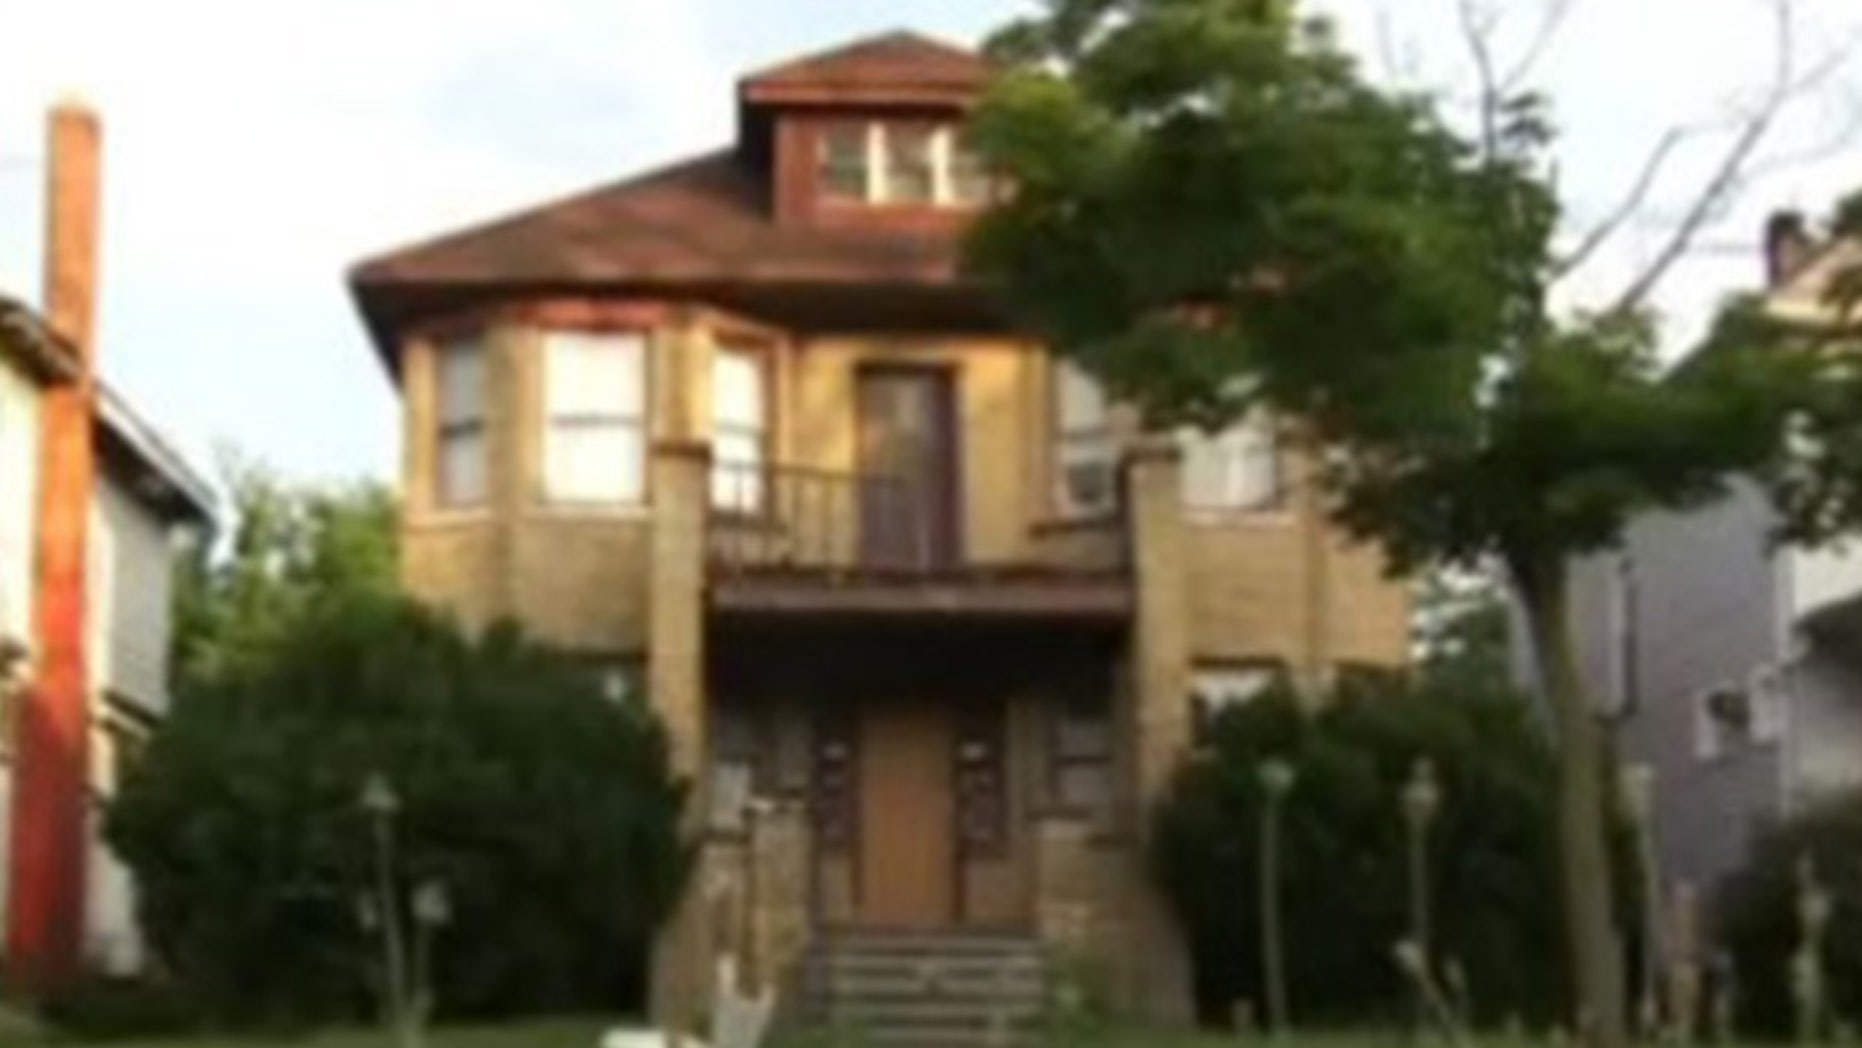 A mother grieving the death of her daughter reportedly has been living with her body in this Detroit home for the past eight months.